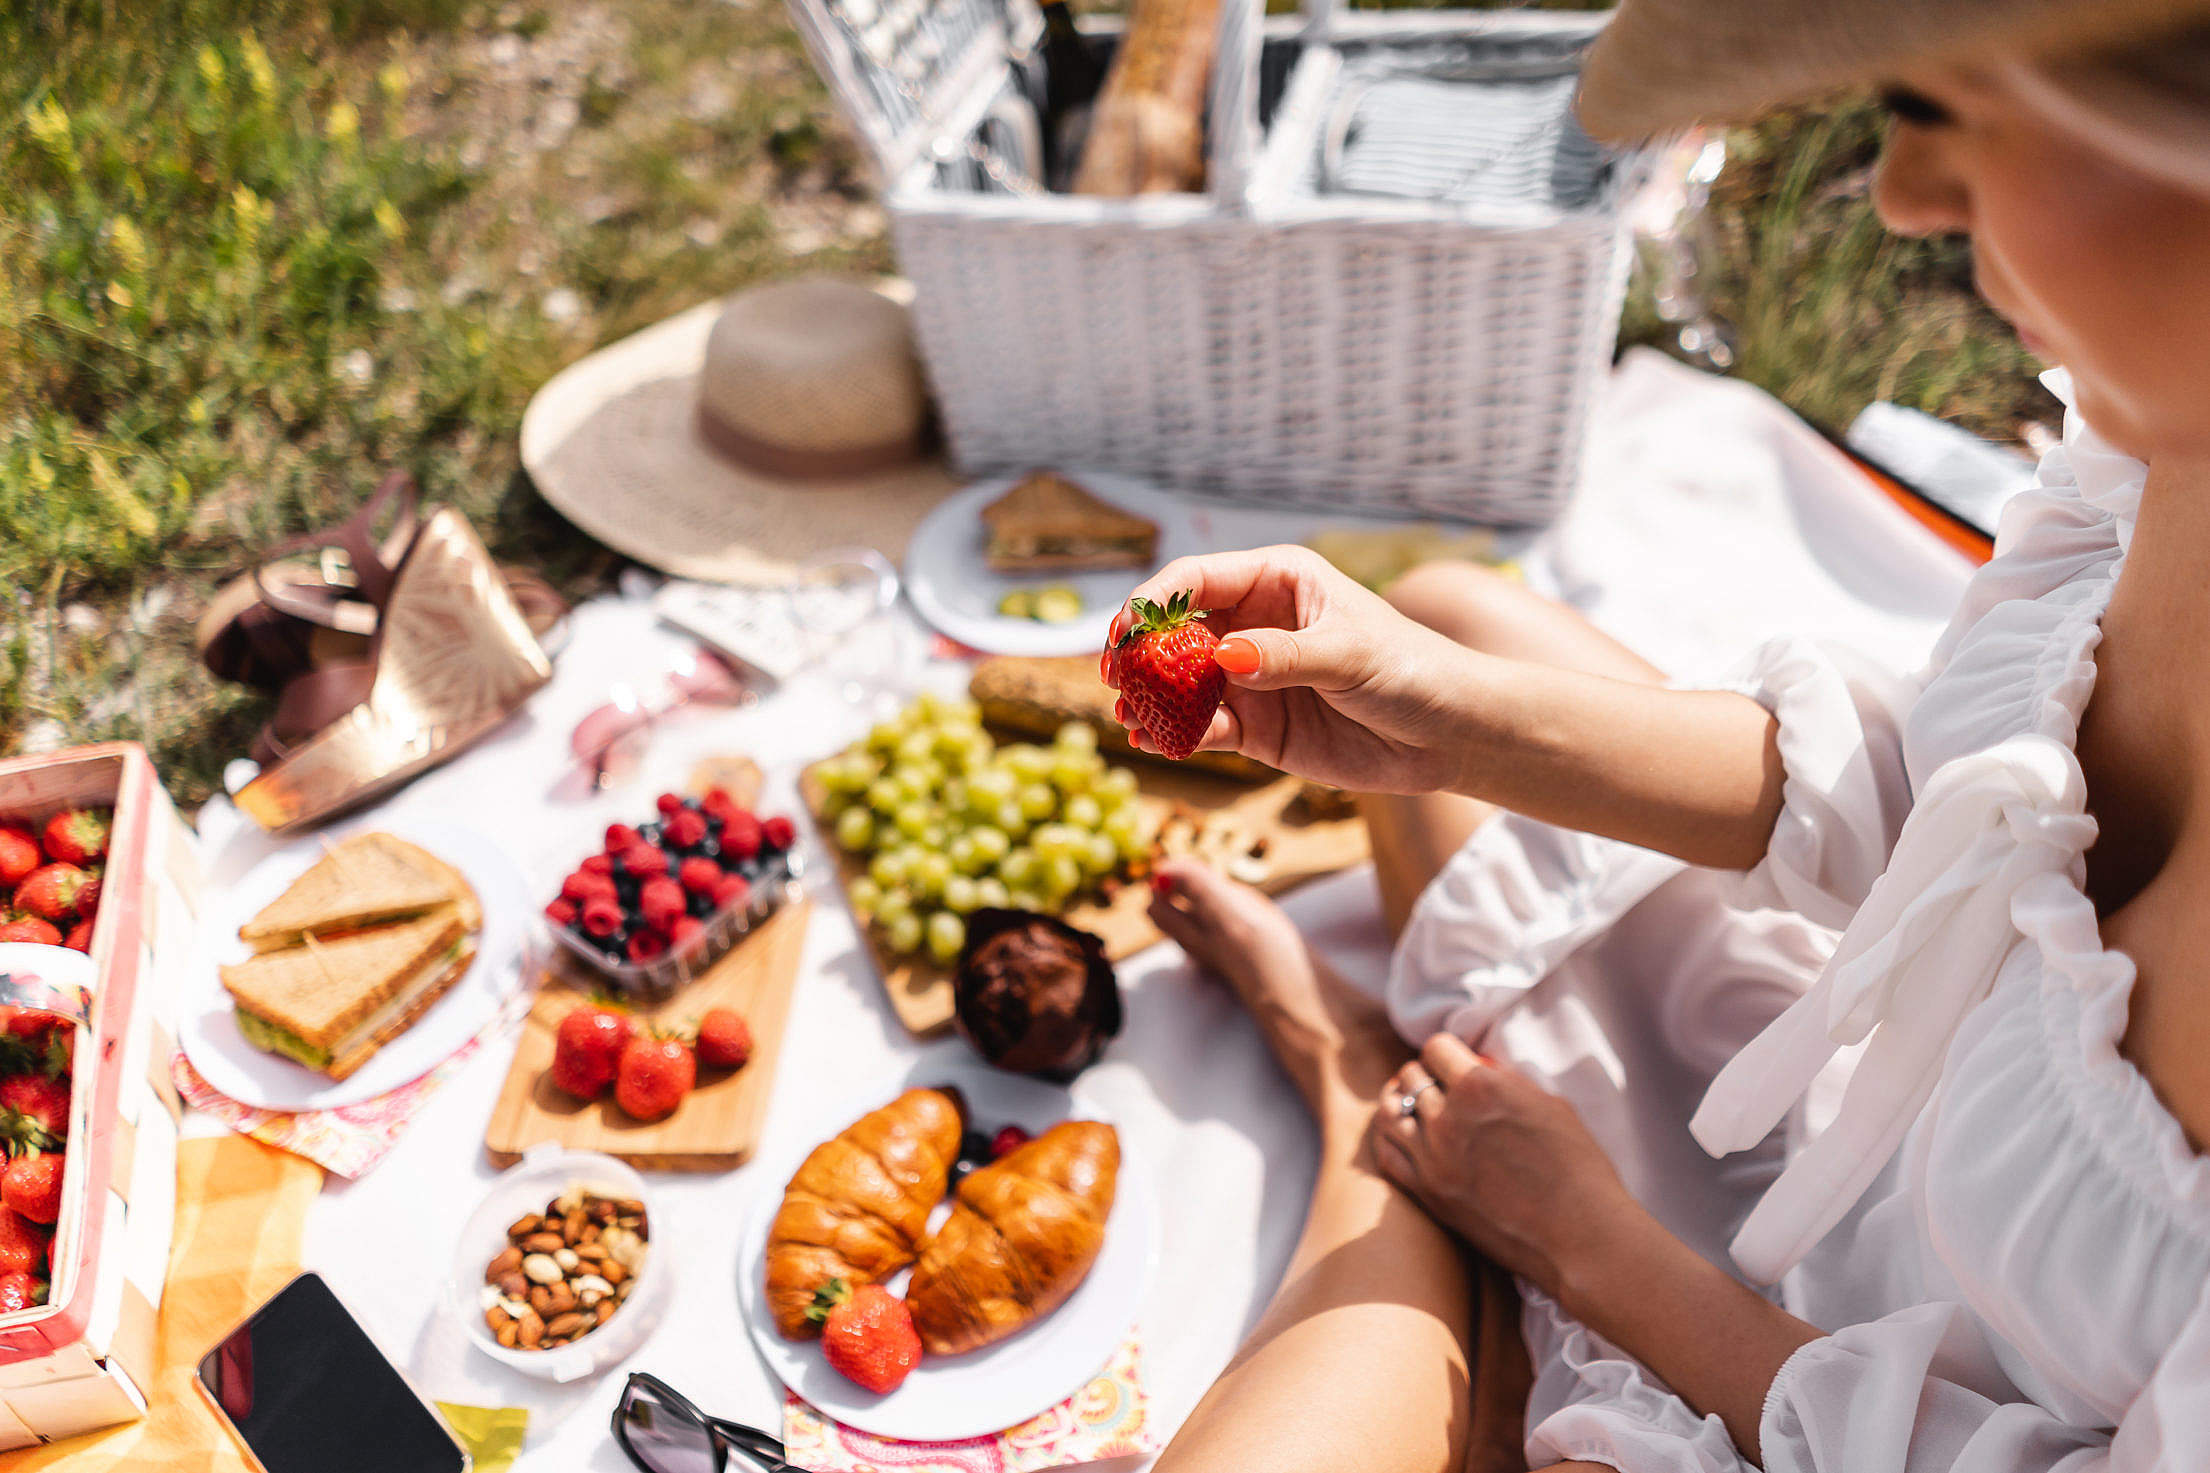 Blanket with Food Prepared for Summer Picnic Outdoors Free Stock Photo